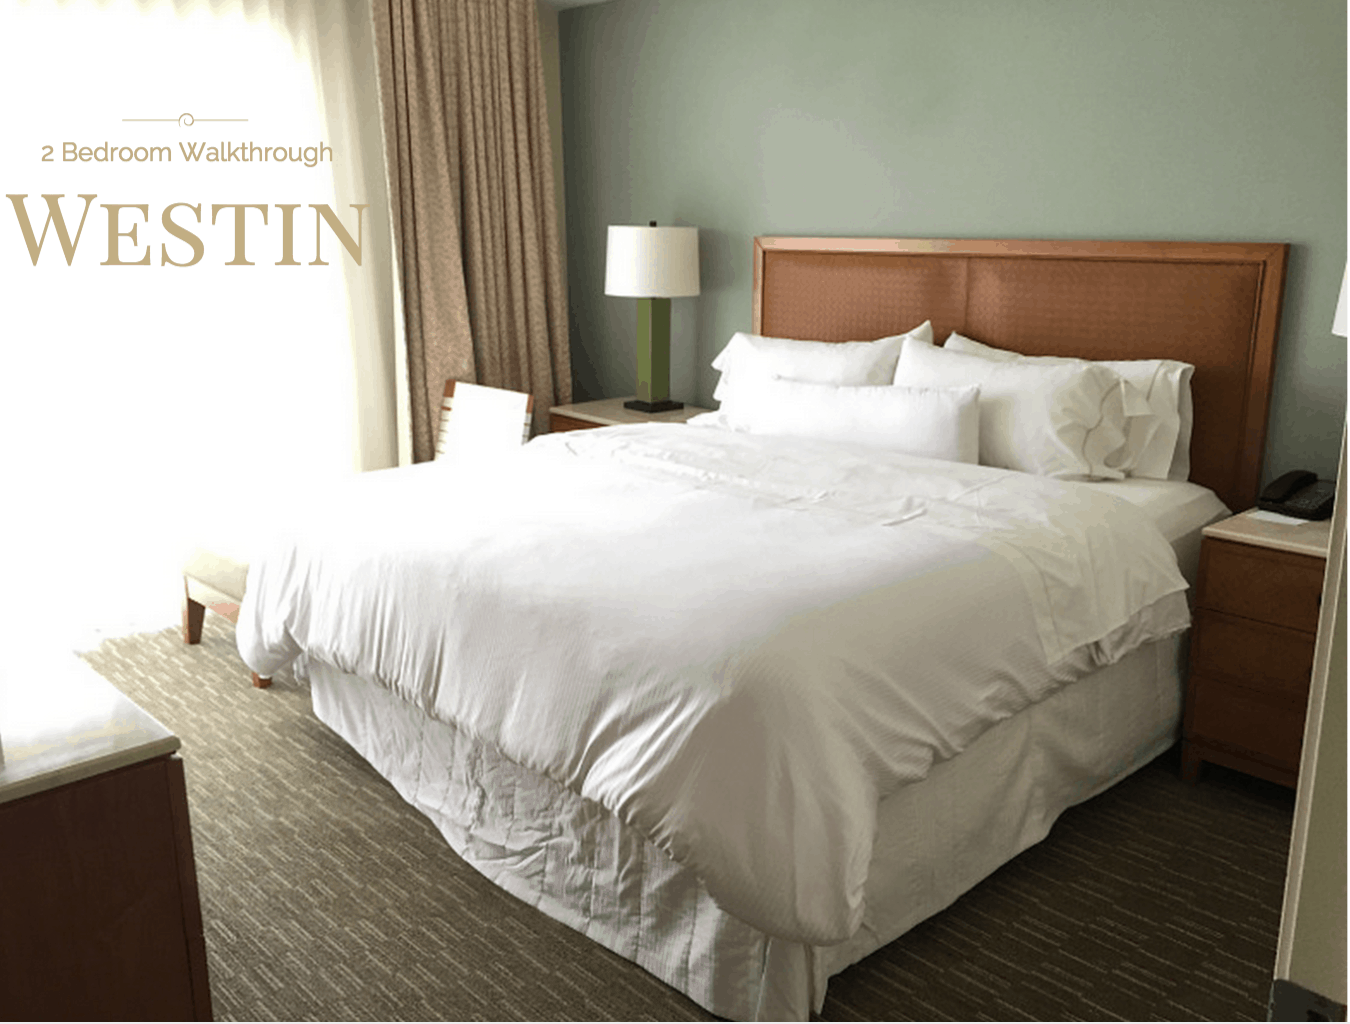 Westin Orlando Universal Boulevard - 2 bedroom suite Walkthrough